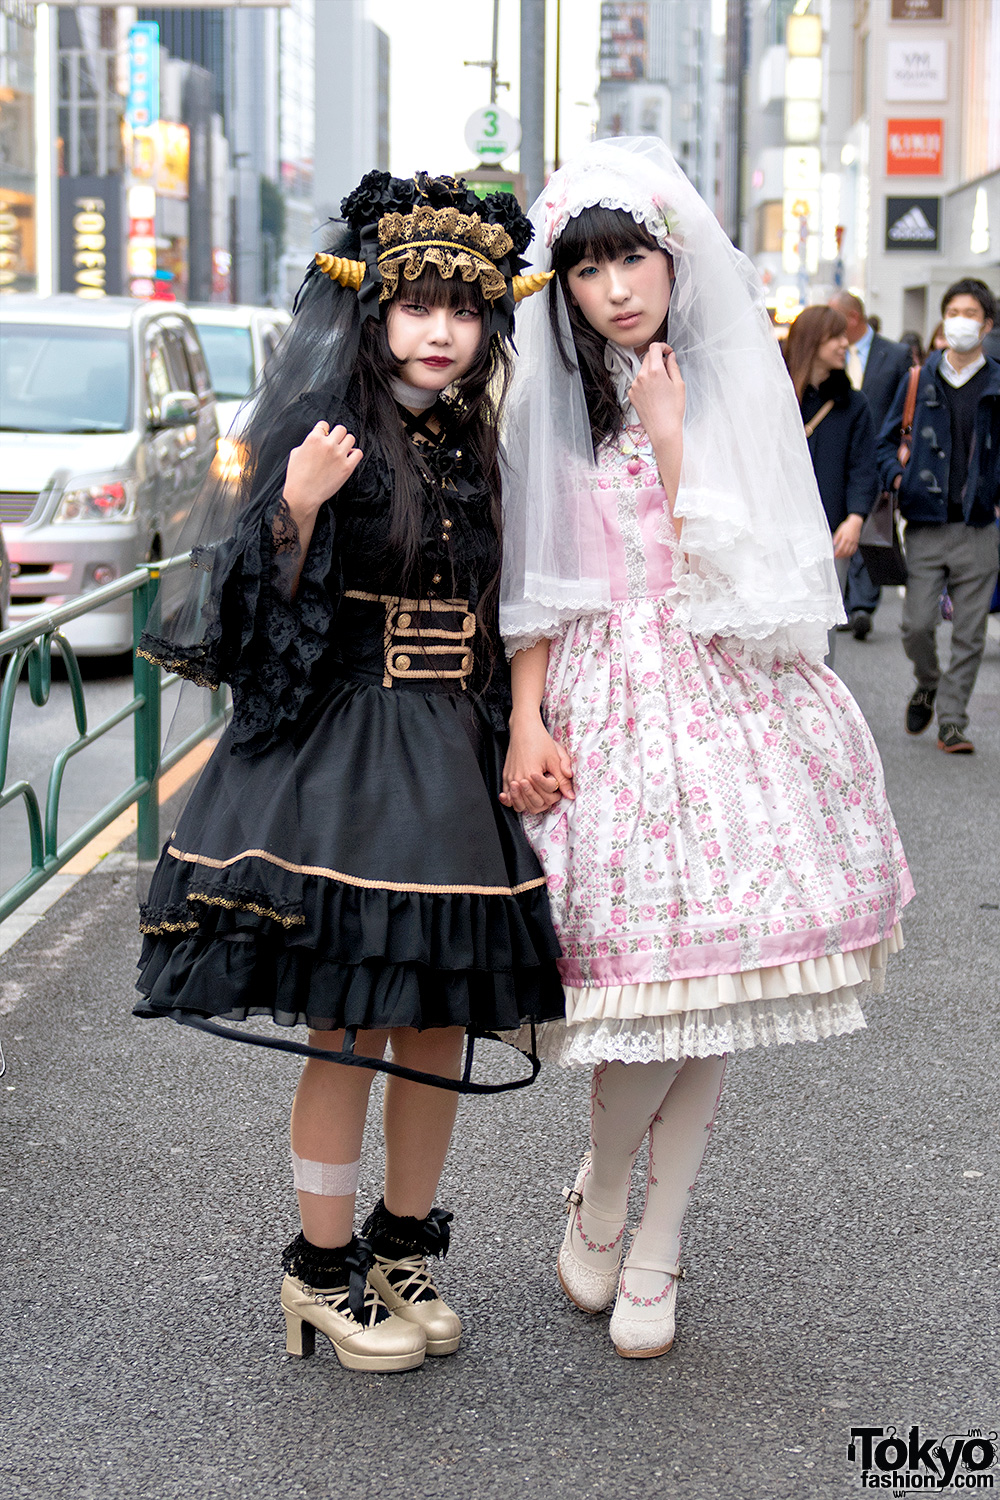 Horned Harajuku Girl In Gothic Lolita Fashion Vs Angelic